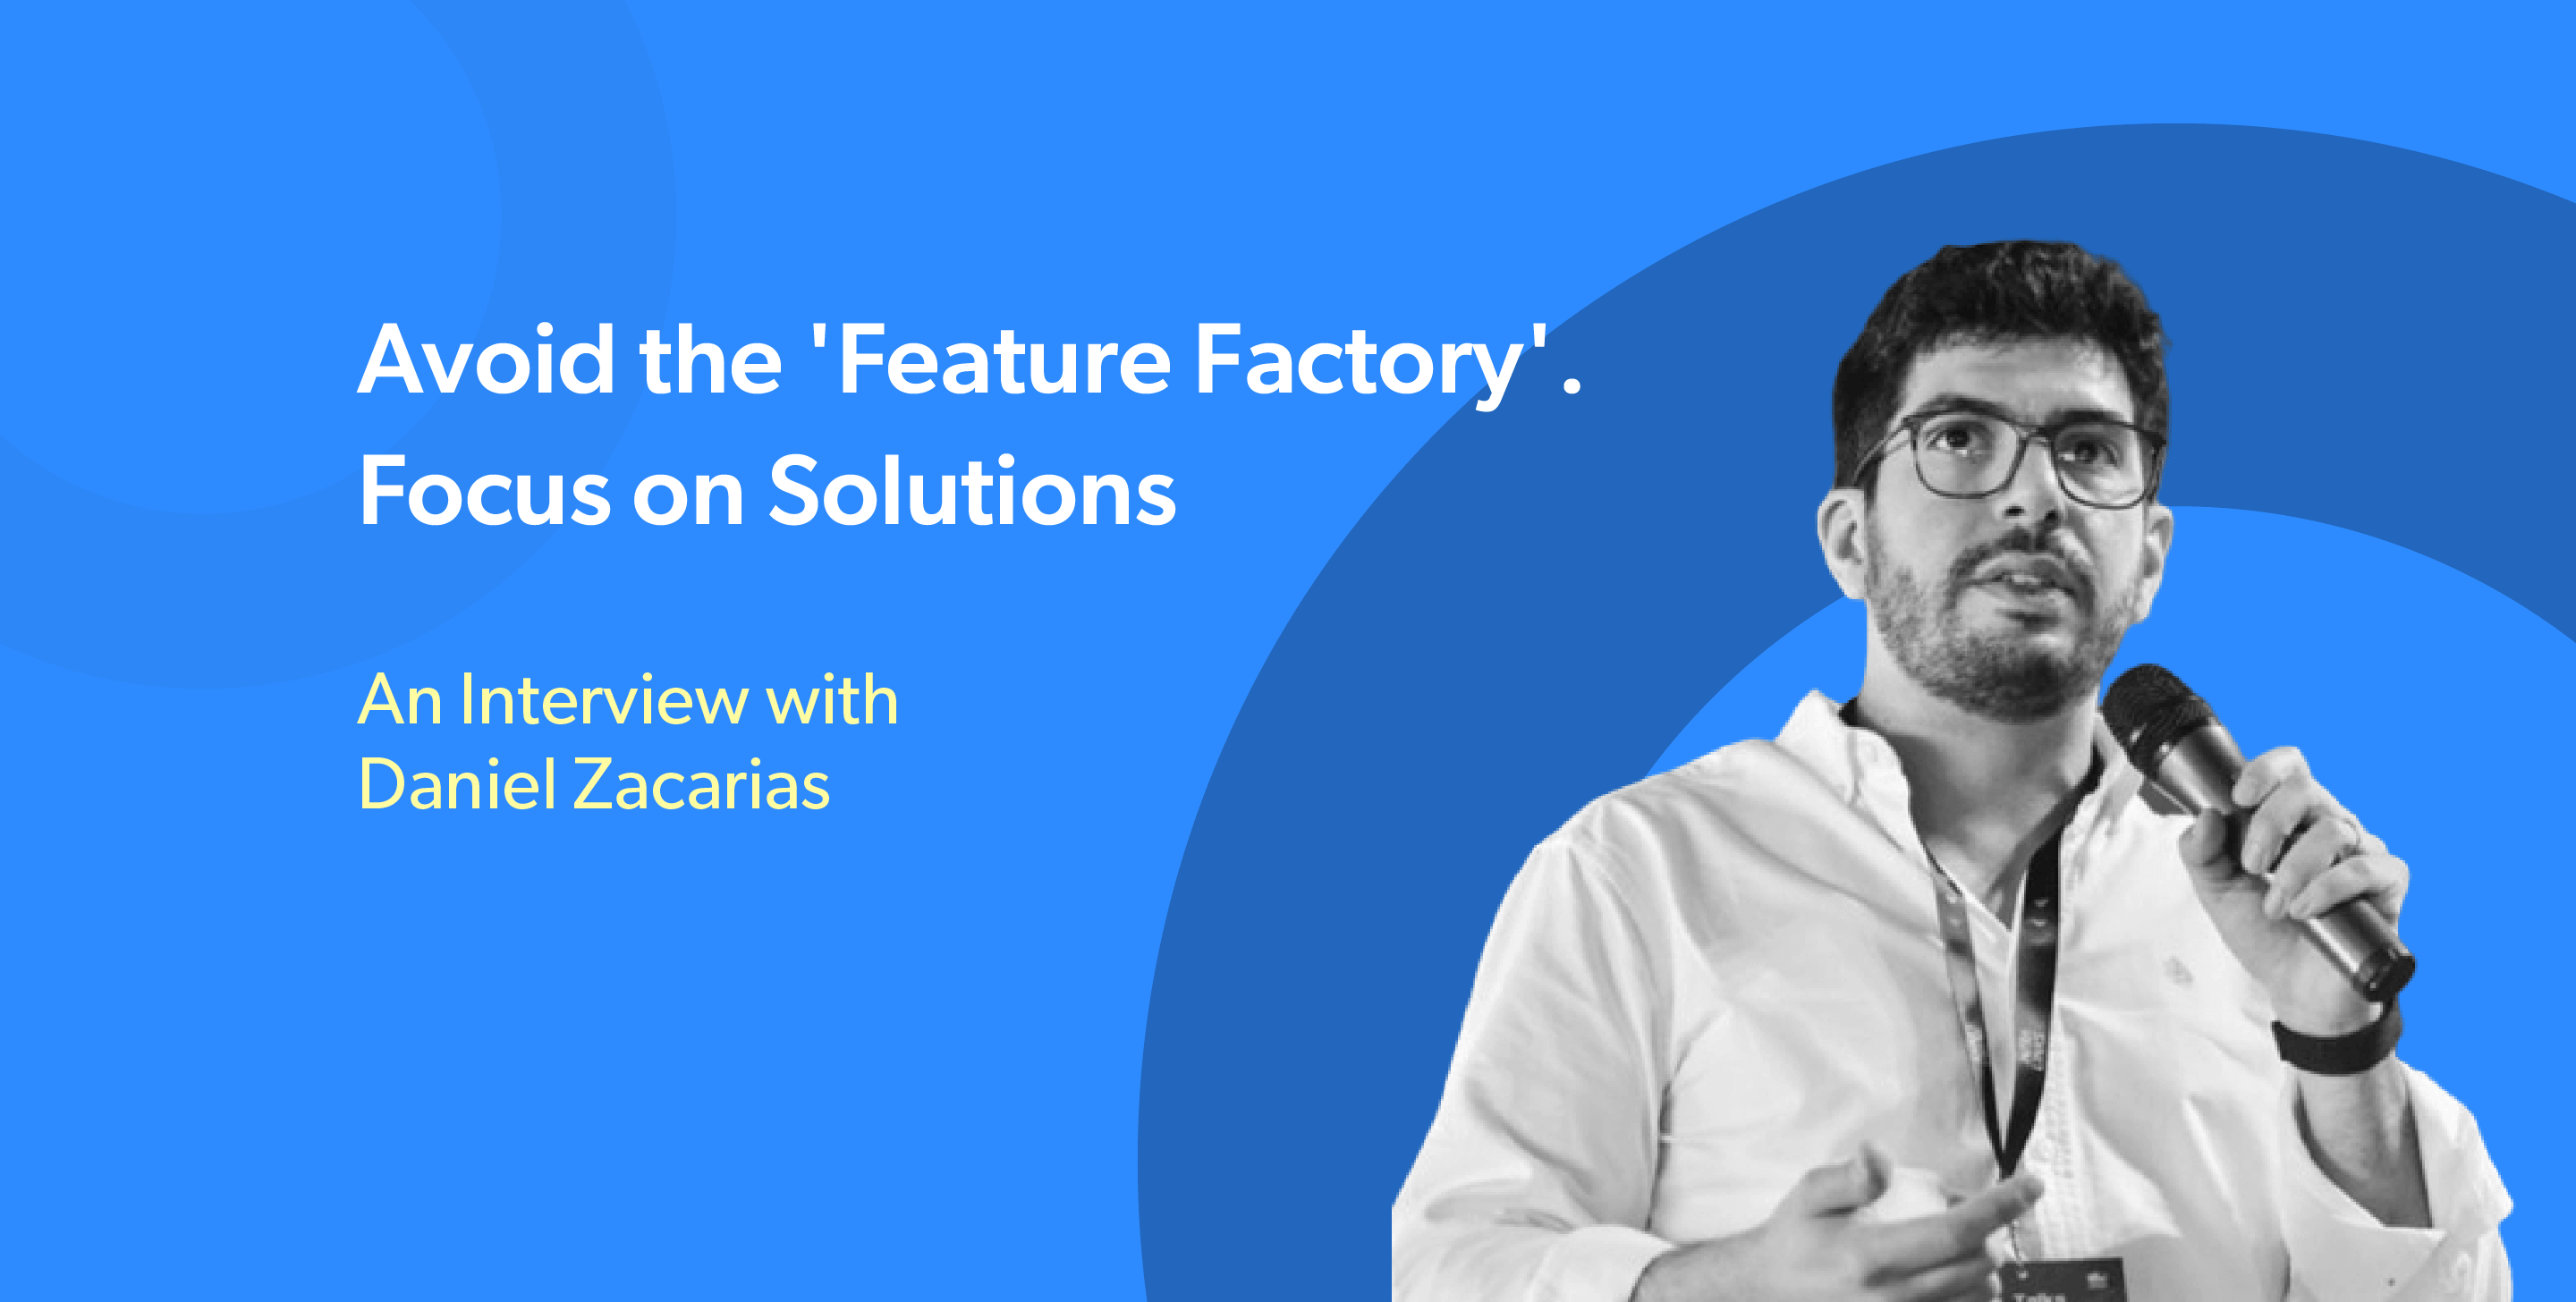 """'Avoid The """"Feature Factory"""". Focus On Solving Problems.' – An Interview with Daniel Zacarias"""